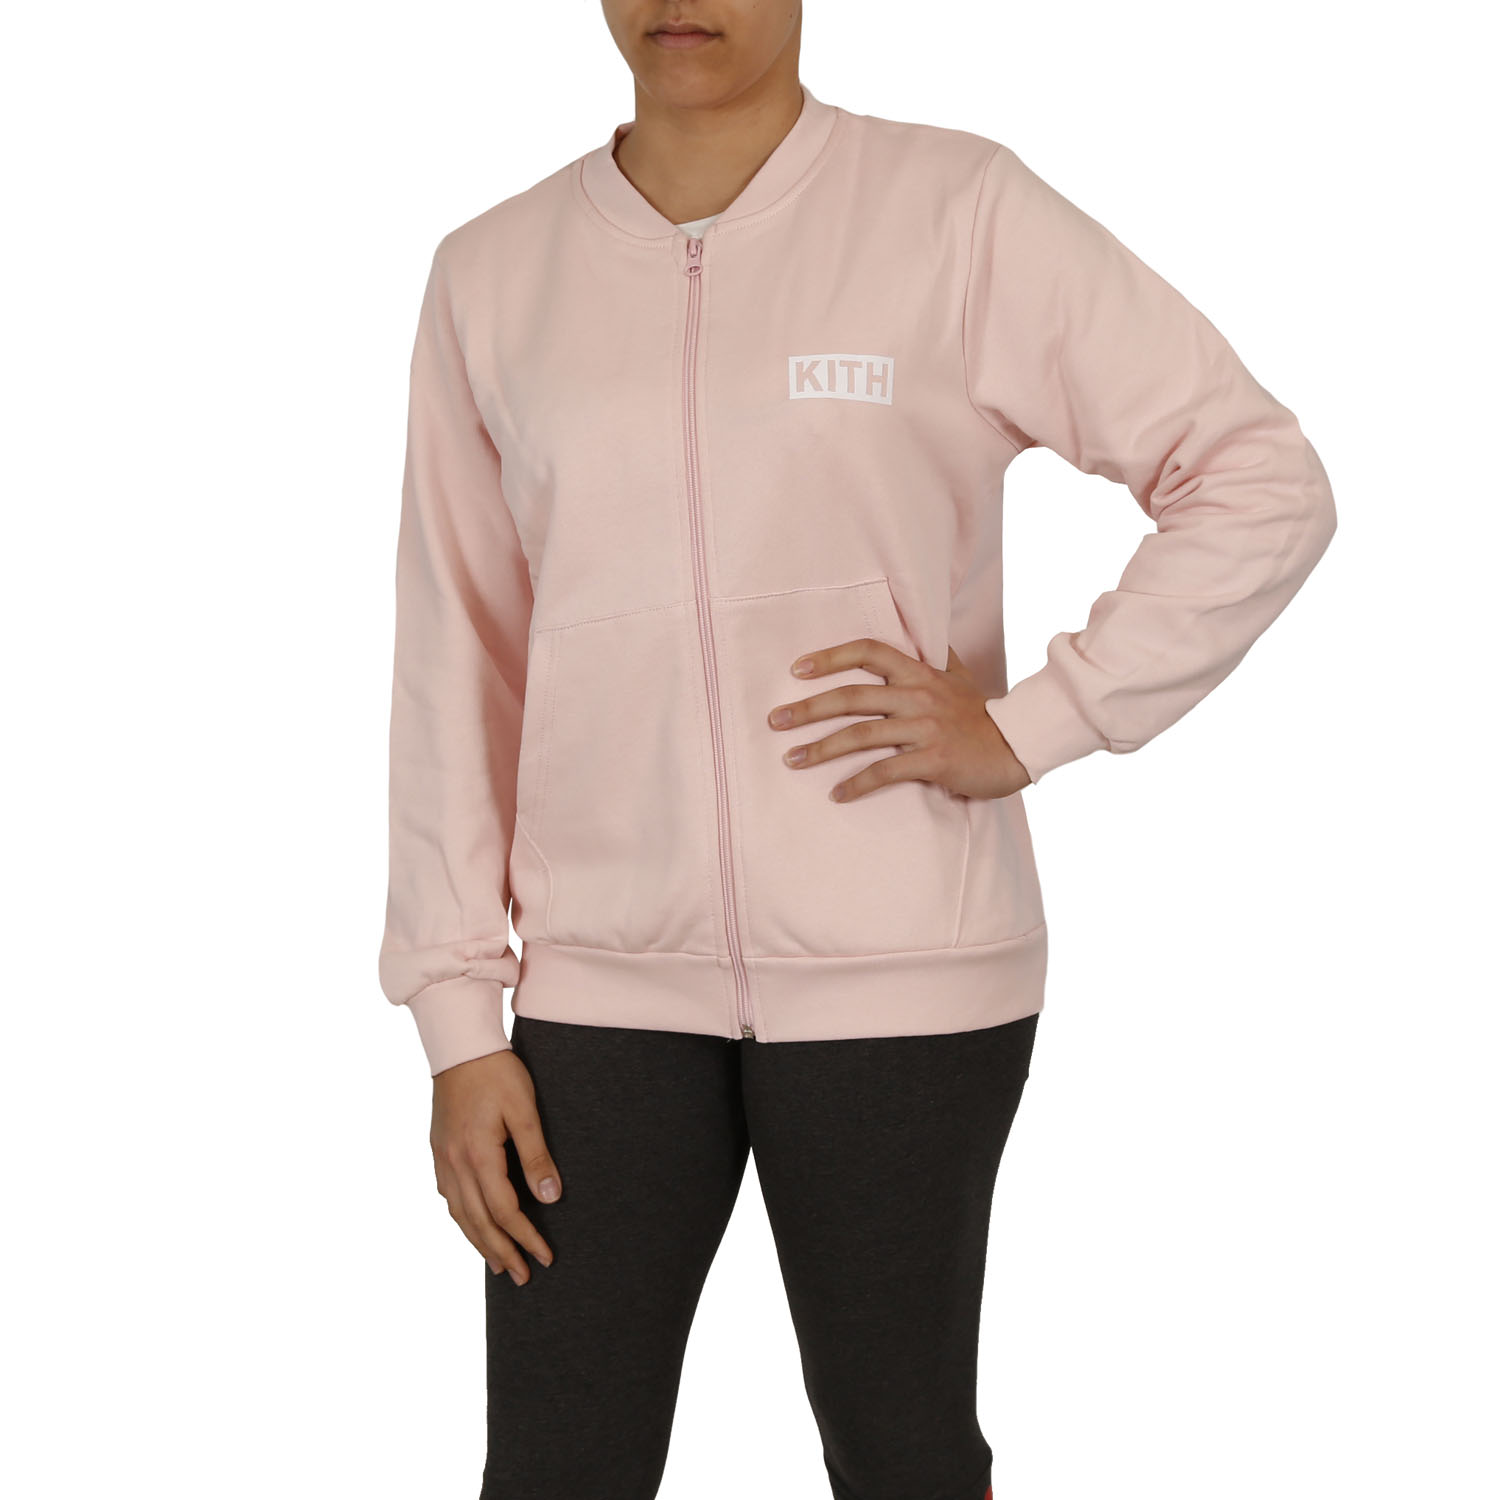 Kith Bomber Track Top W ( 18PEK112-173 ) ρούχα    γυναίκα   sweaters   hoodies   ζακέτες